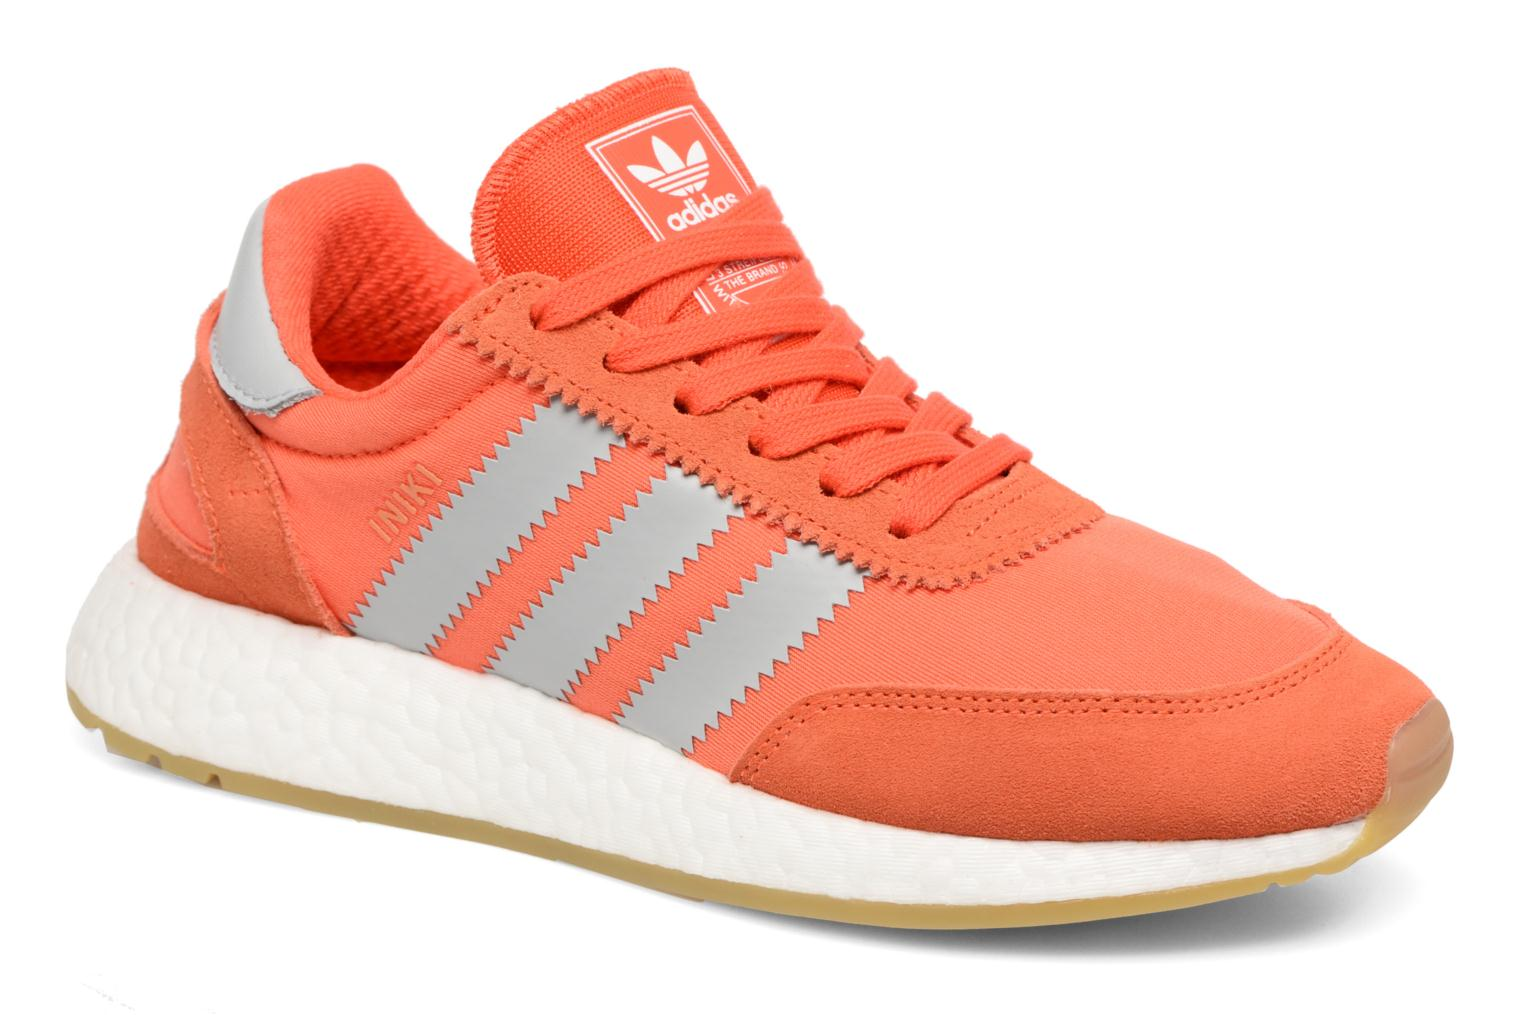 Sneaker Adidas I-5923 Wns